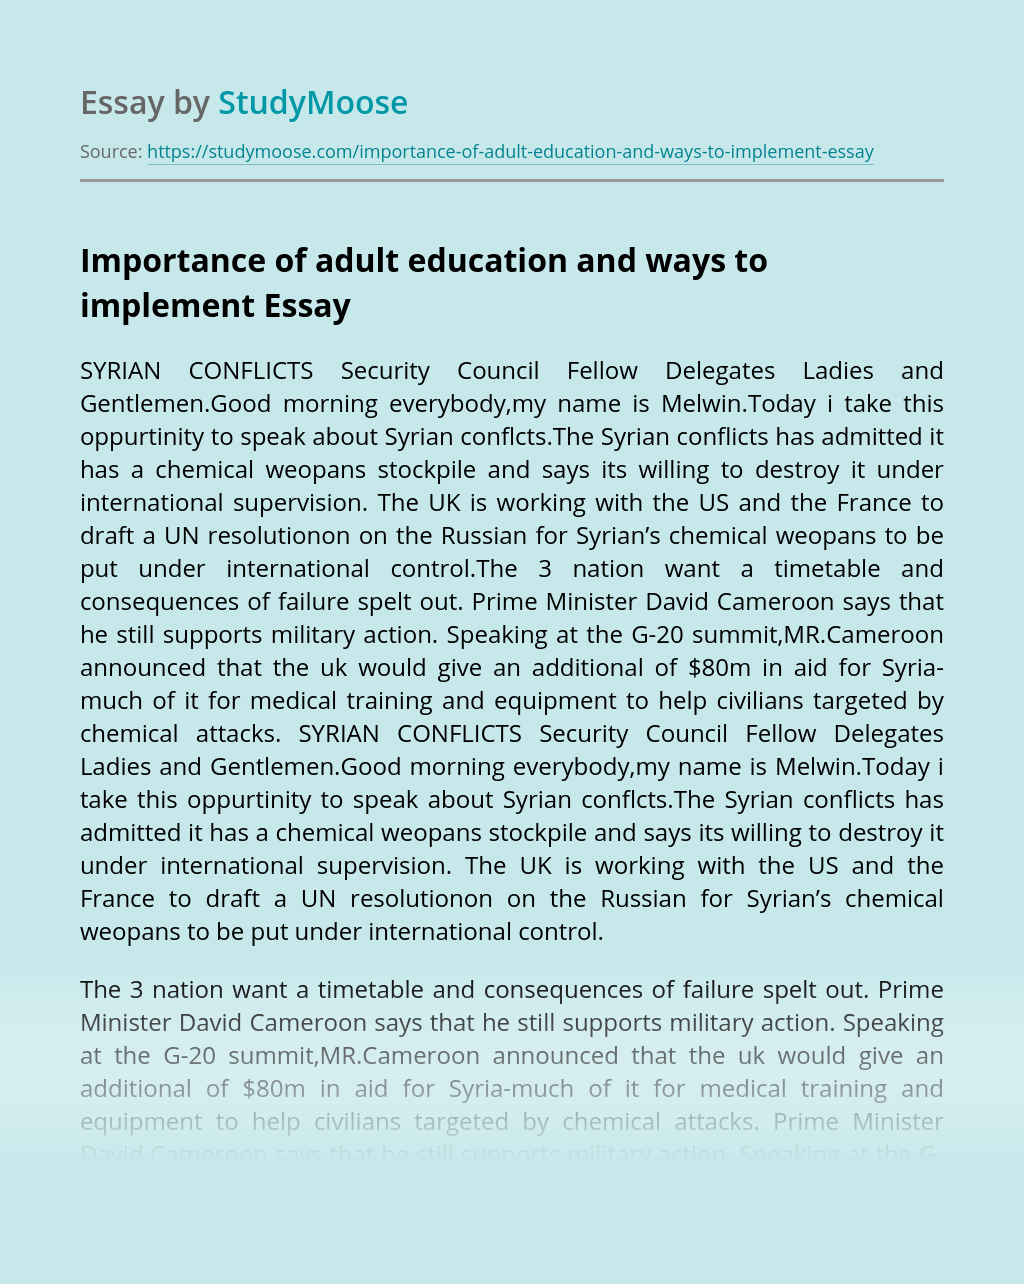 Importance of adult education and ways to implement